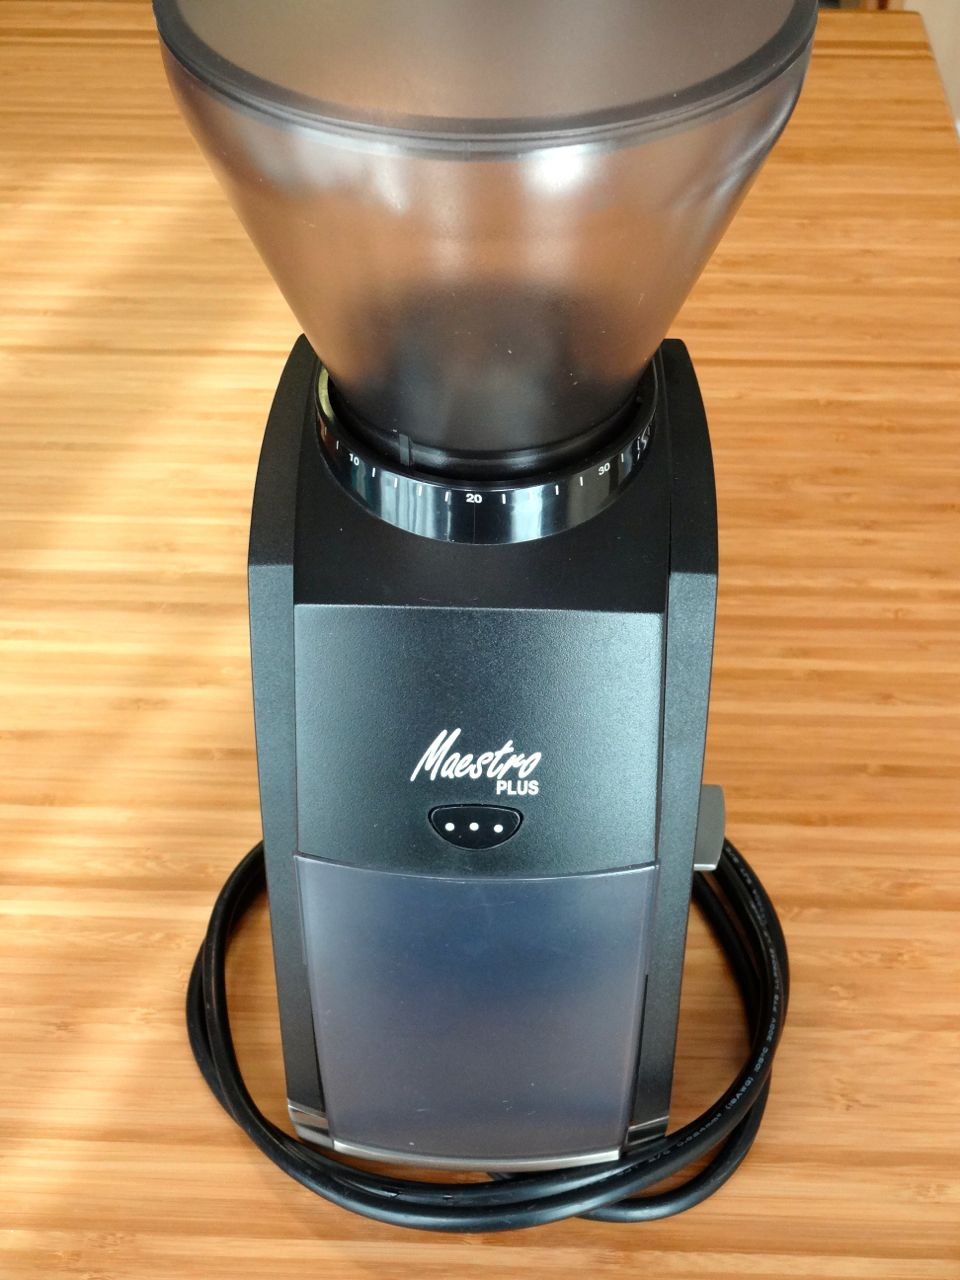 Burr grinder is nice to have